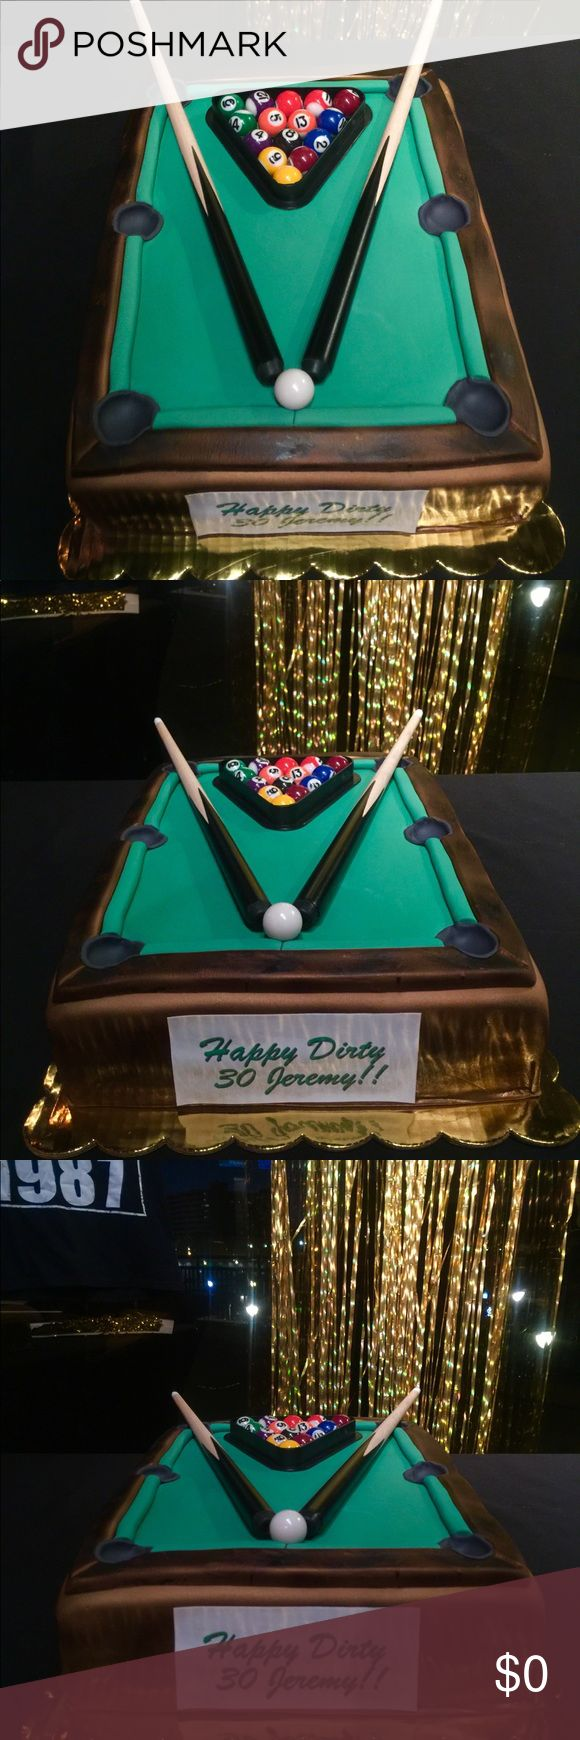 PLAYABLE POOL TABLE BIRTHDAY CAKE PLAYABLE POOL TABLE CAKE. CAKE HAS MINIATURE REAL BALLS AND STICKS. AS YOU CAN SEE THE BIRTHDAY BOY BURST THE BALLS BEFORE CUTTING. Other